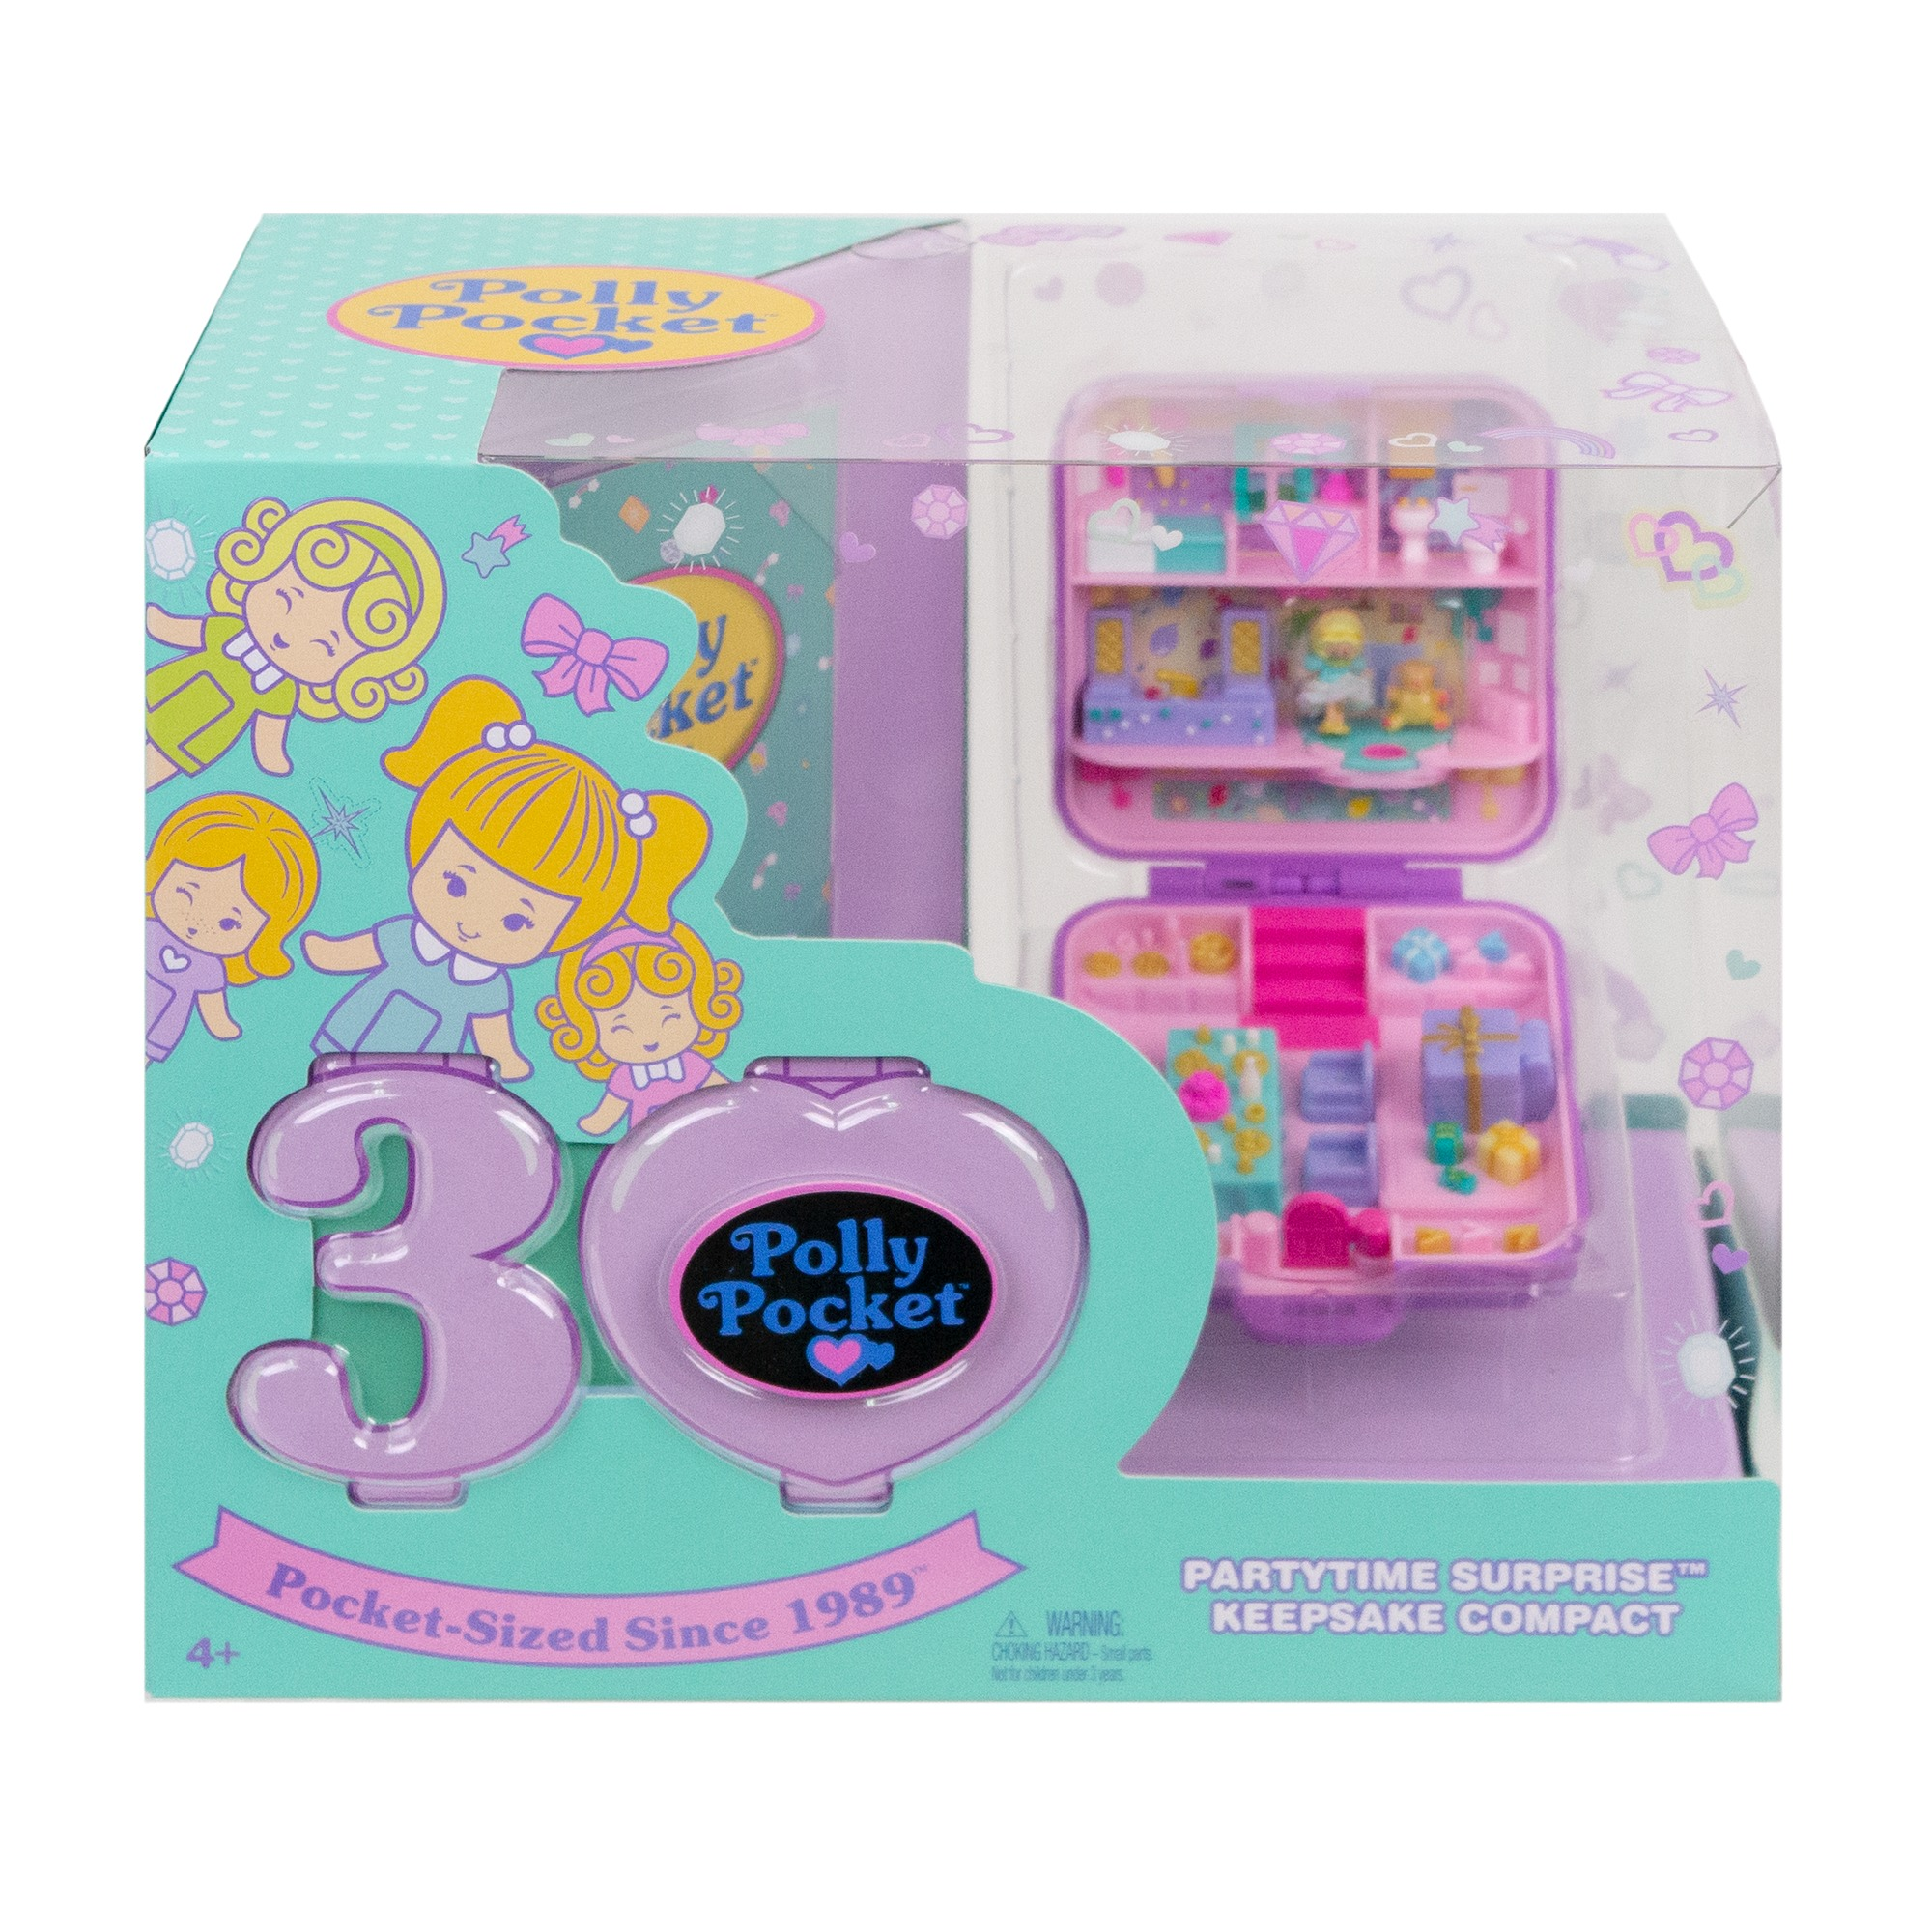 Polly Pocket 30th Anniversary Partytime Surprise Keepsake